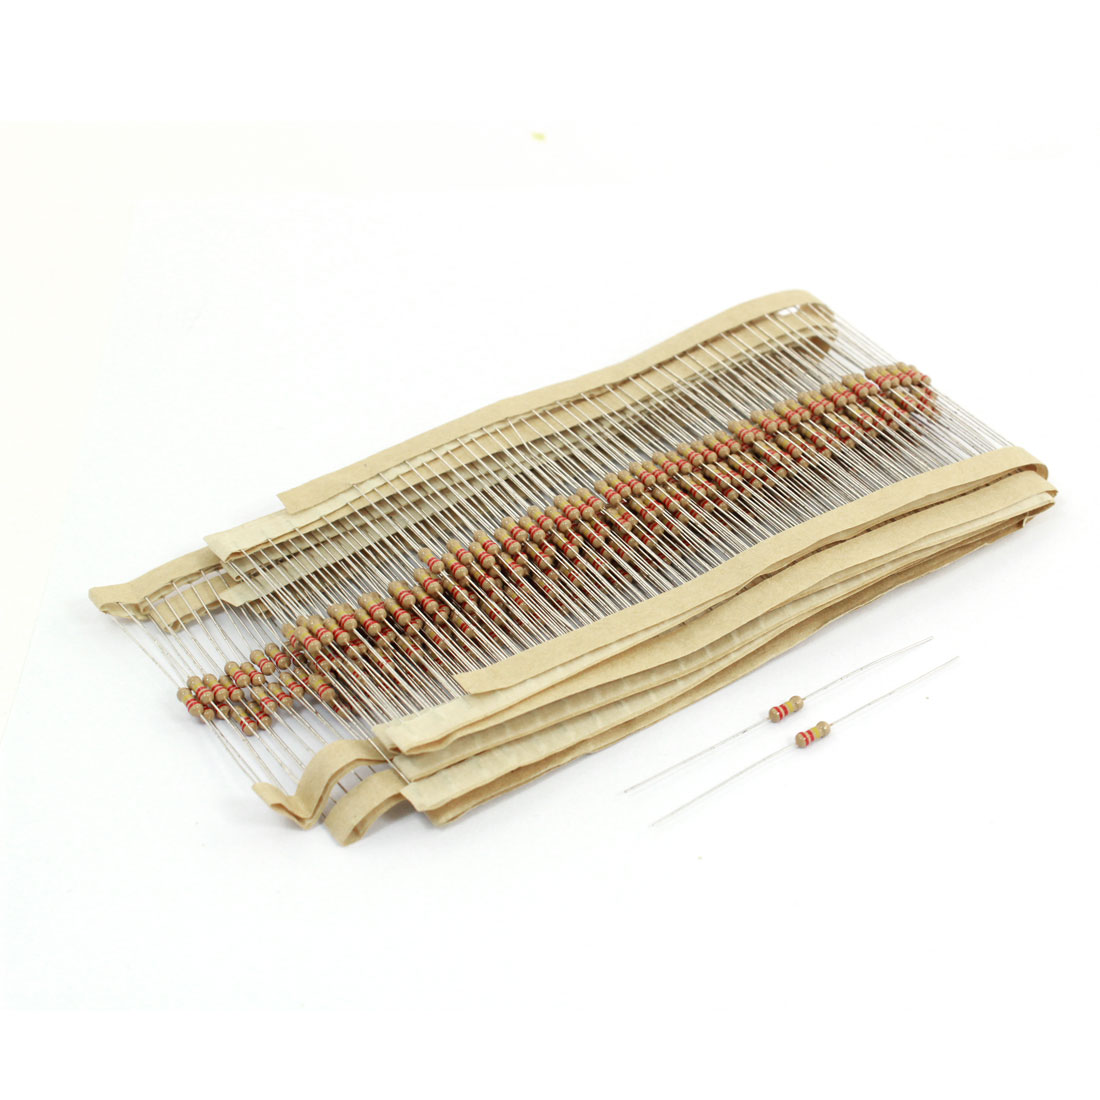 400Pcs 220K Ohm 1/4W Axial Leads Color Ring Carbon Film Resistor 0.25W